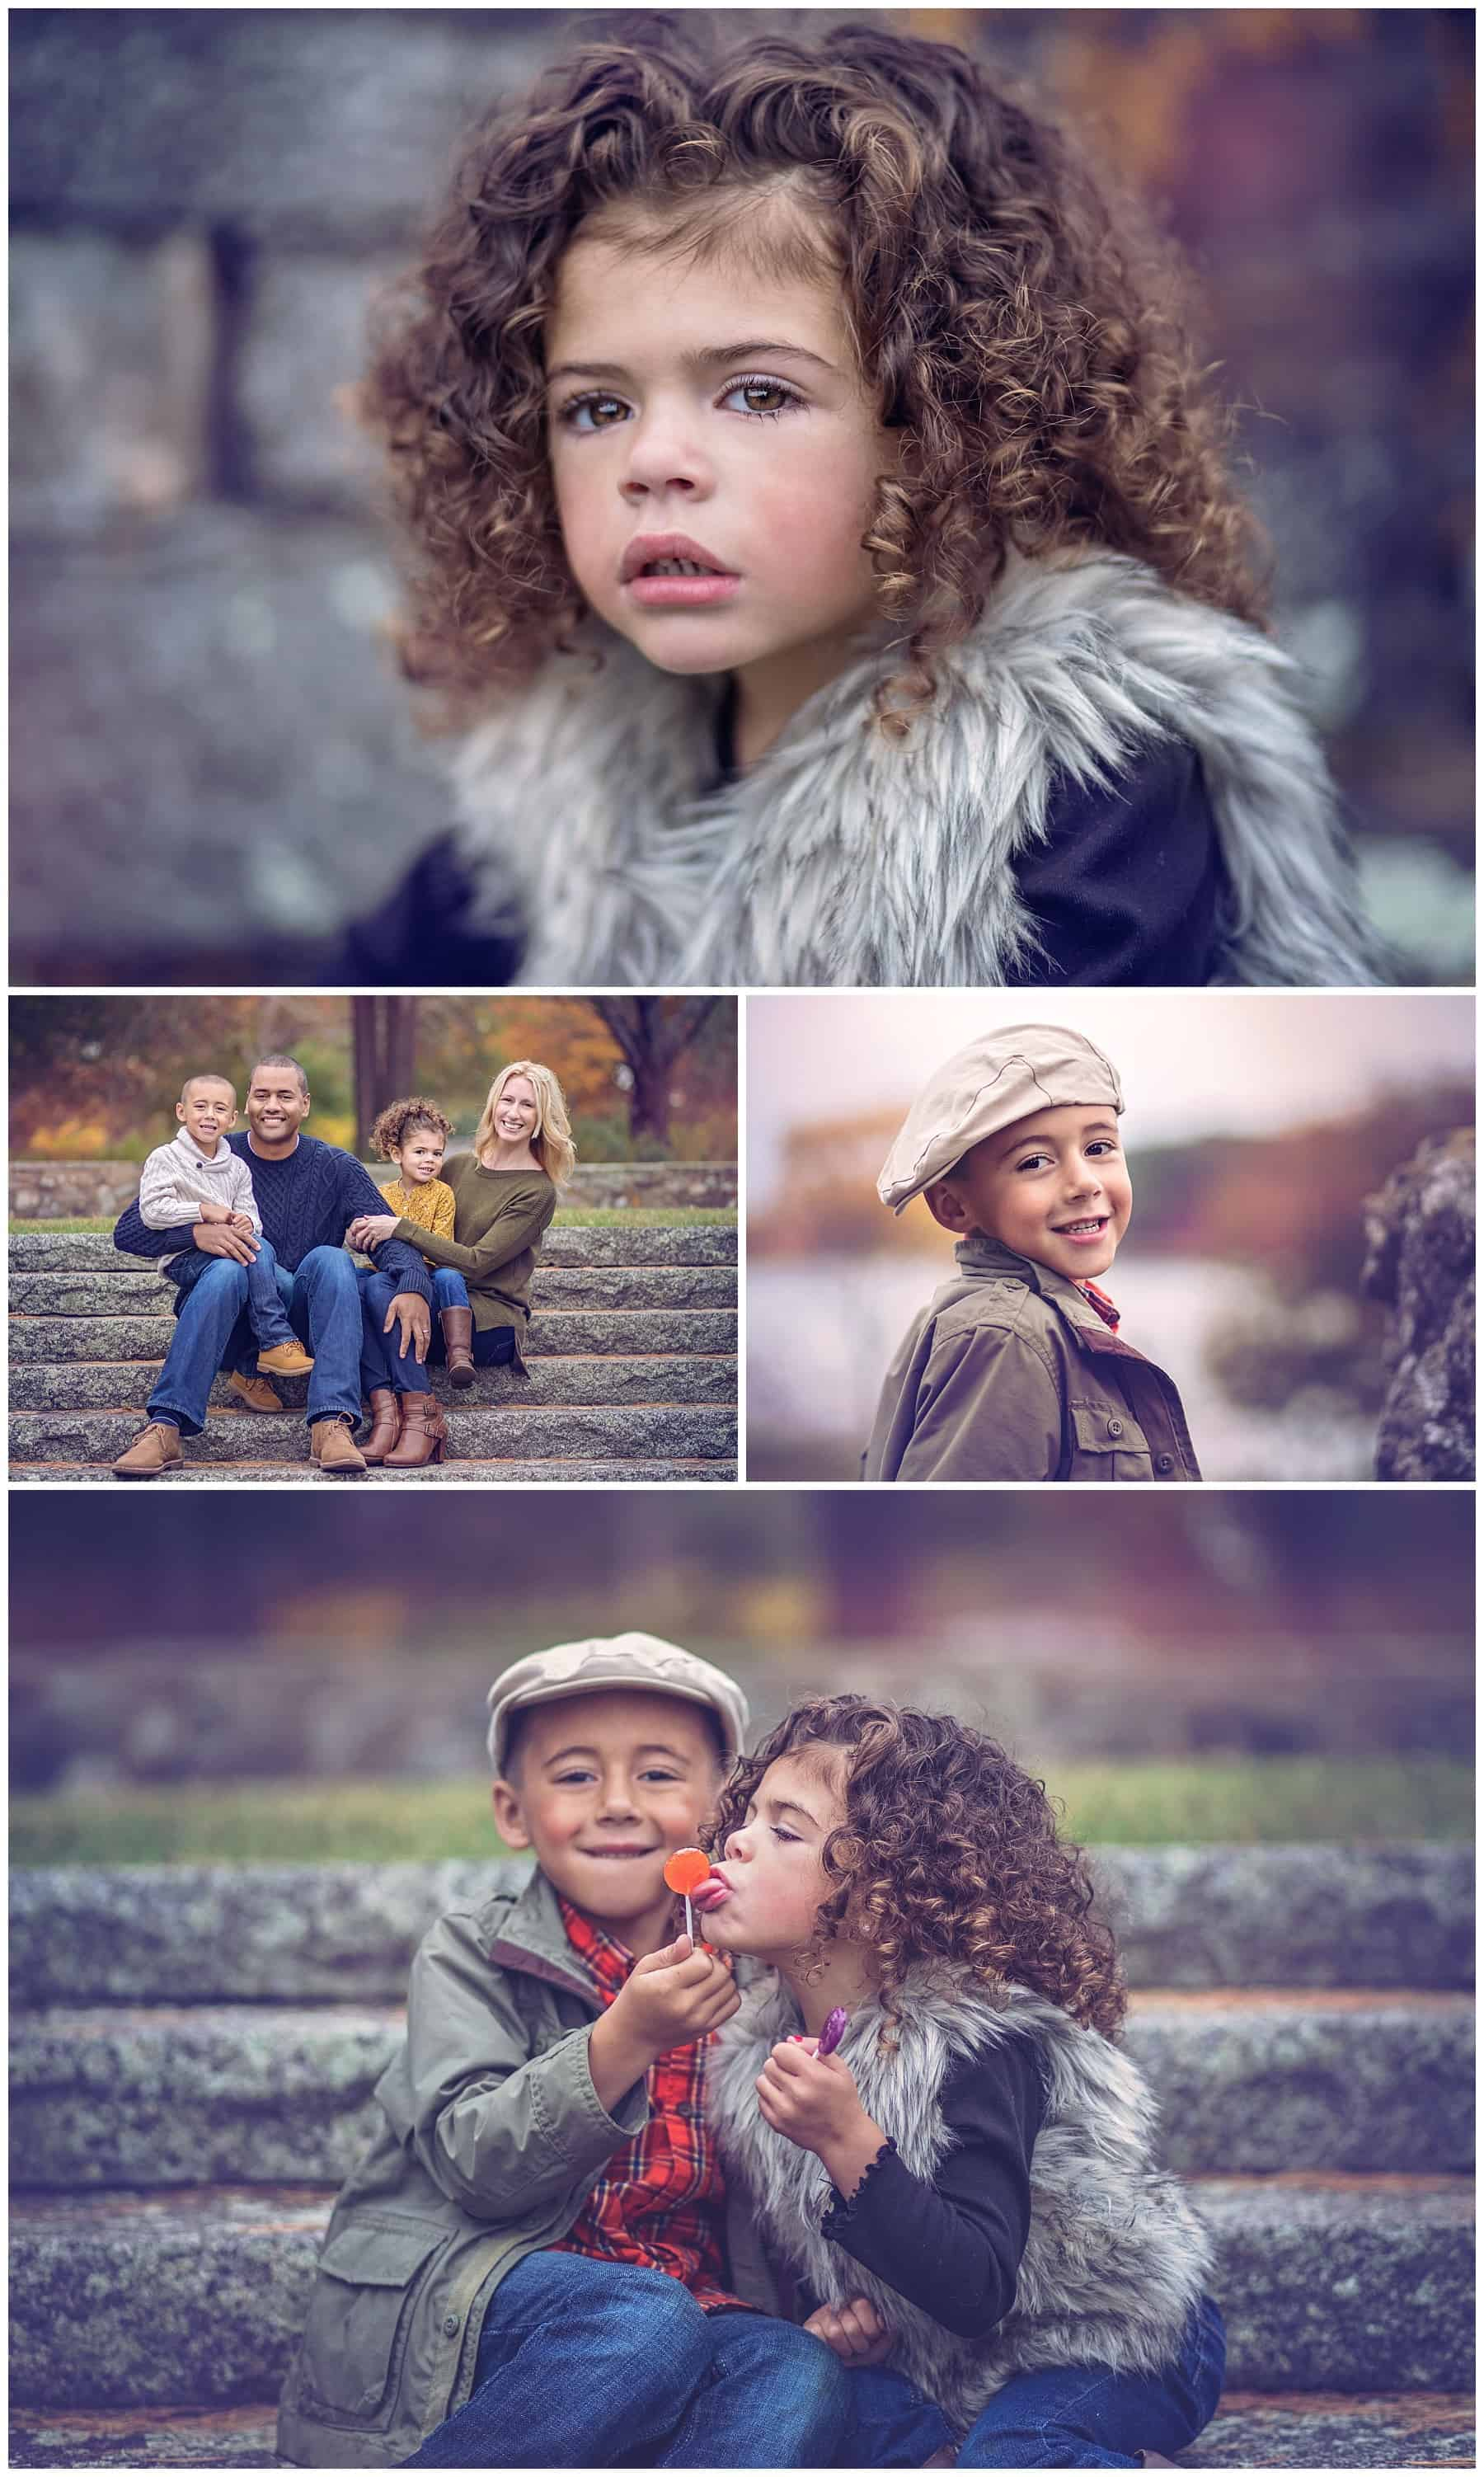 family photos, family photography, candid photography, lifestyle photography, kids, families